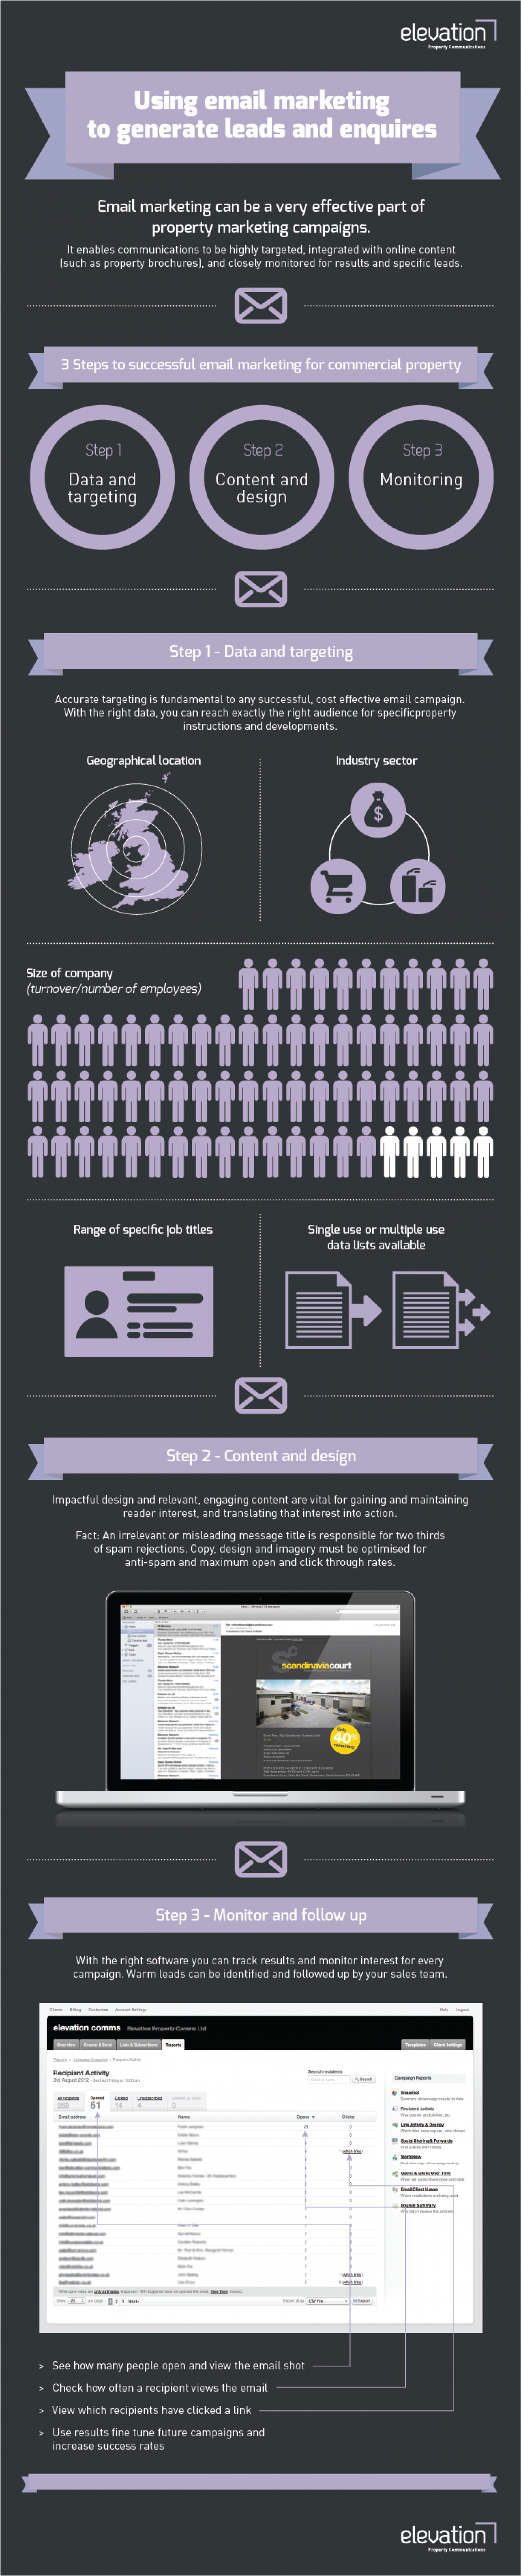 Making The Most Of Email Marketing Infographic